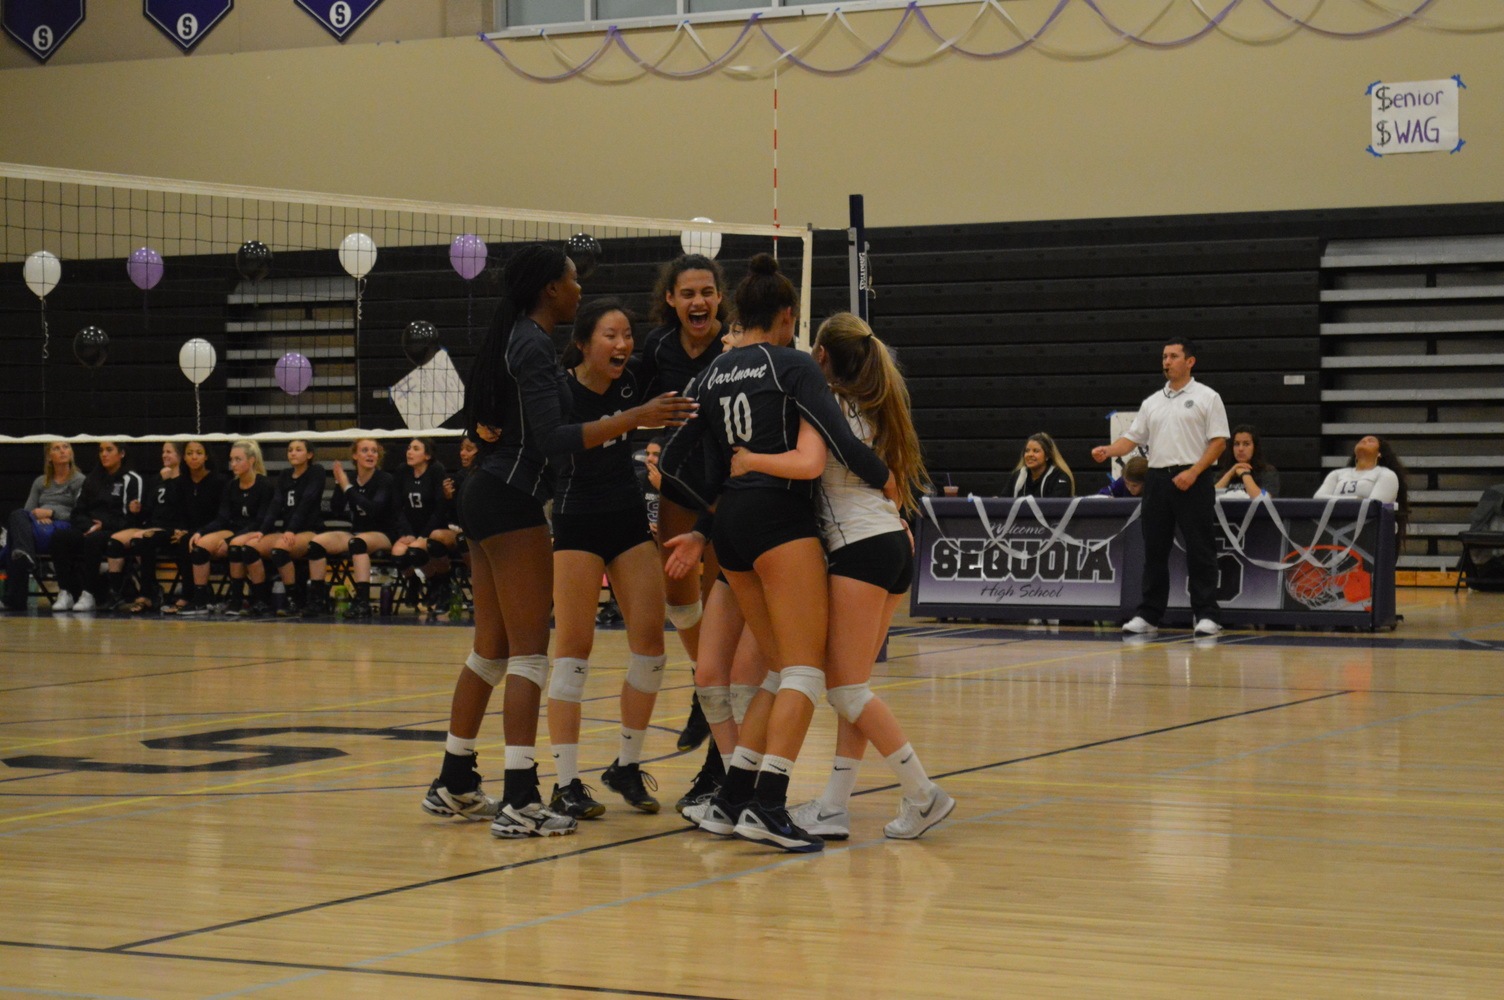 Varsity+volleyball+celebrates+their+final+win+of+the+season+against+the+Cherokees.+